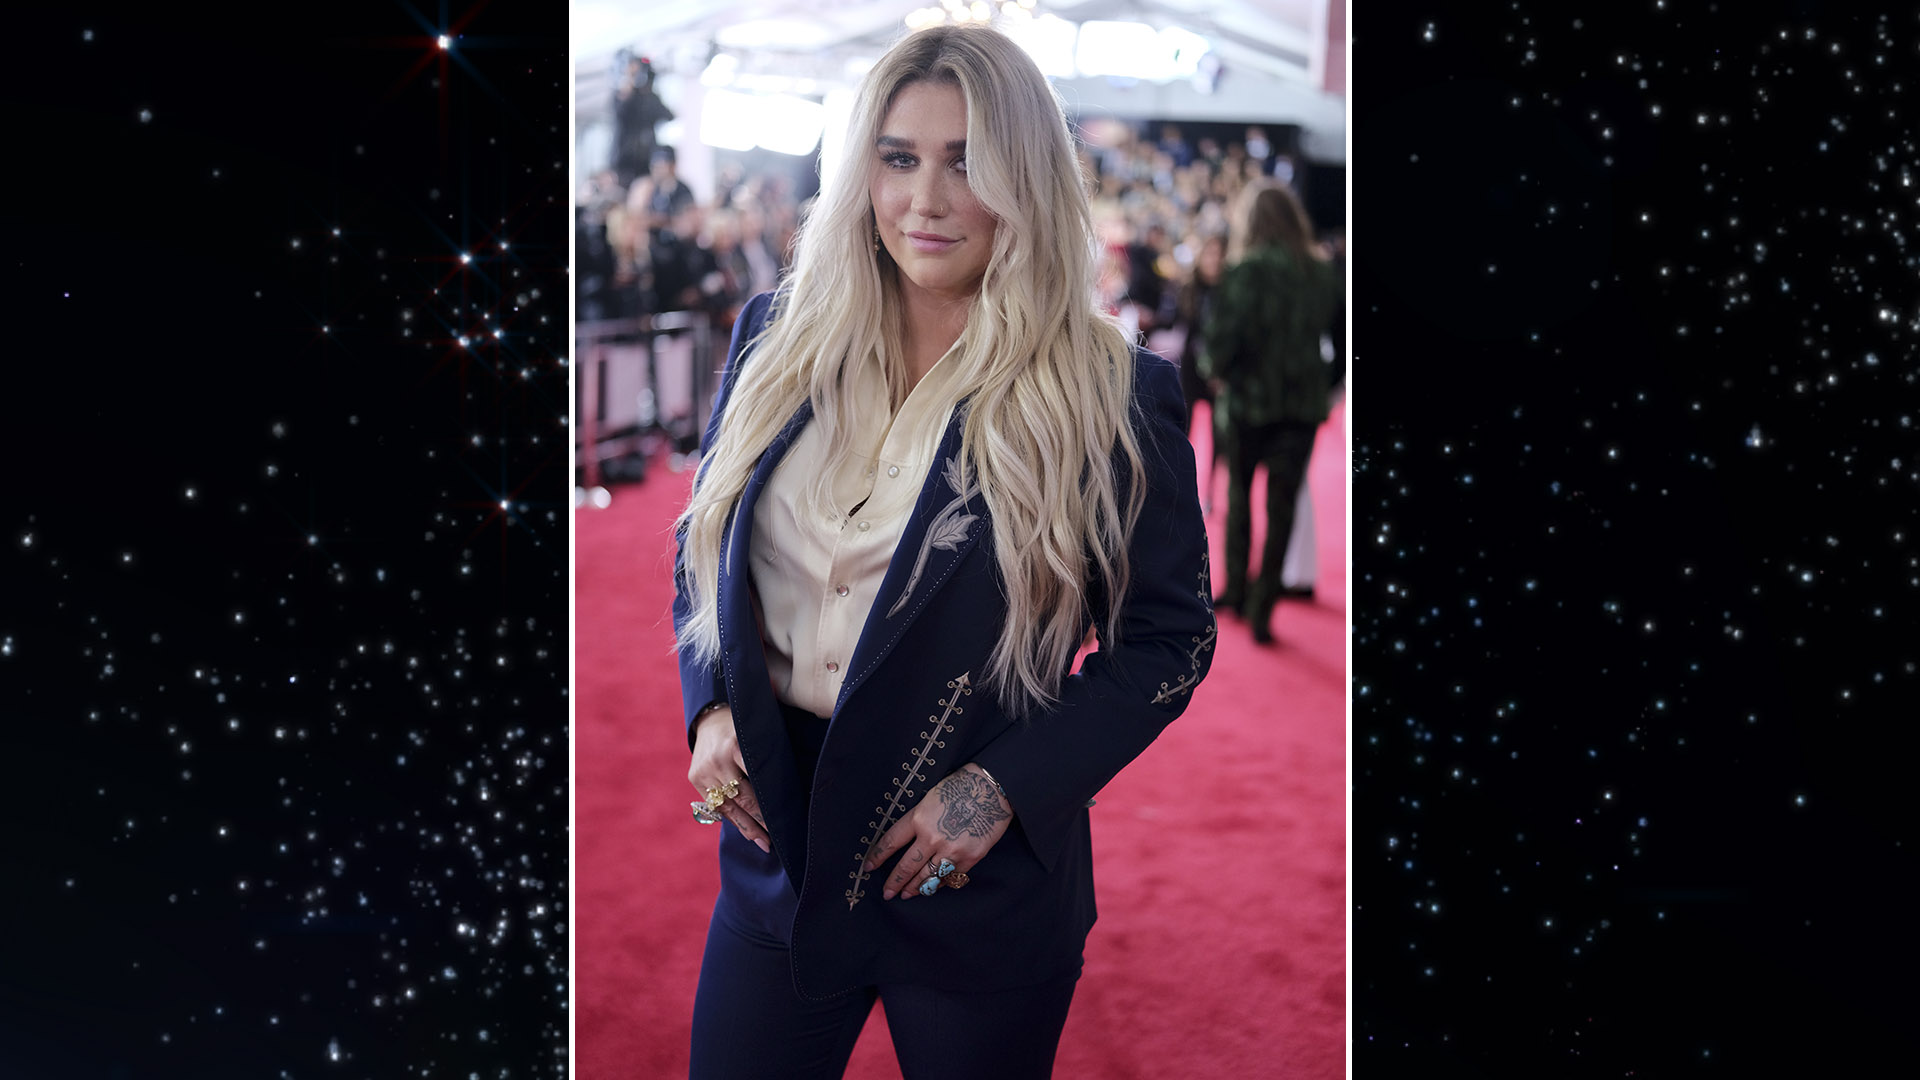 Kesha makes her grand return to the GRAMMY Awards red carpet while wearing a vintage Nudie Cohn suit.